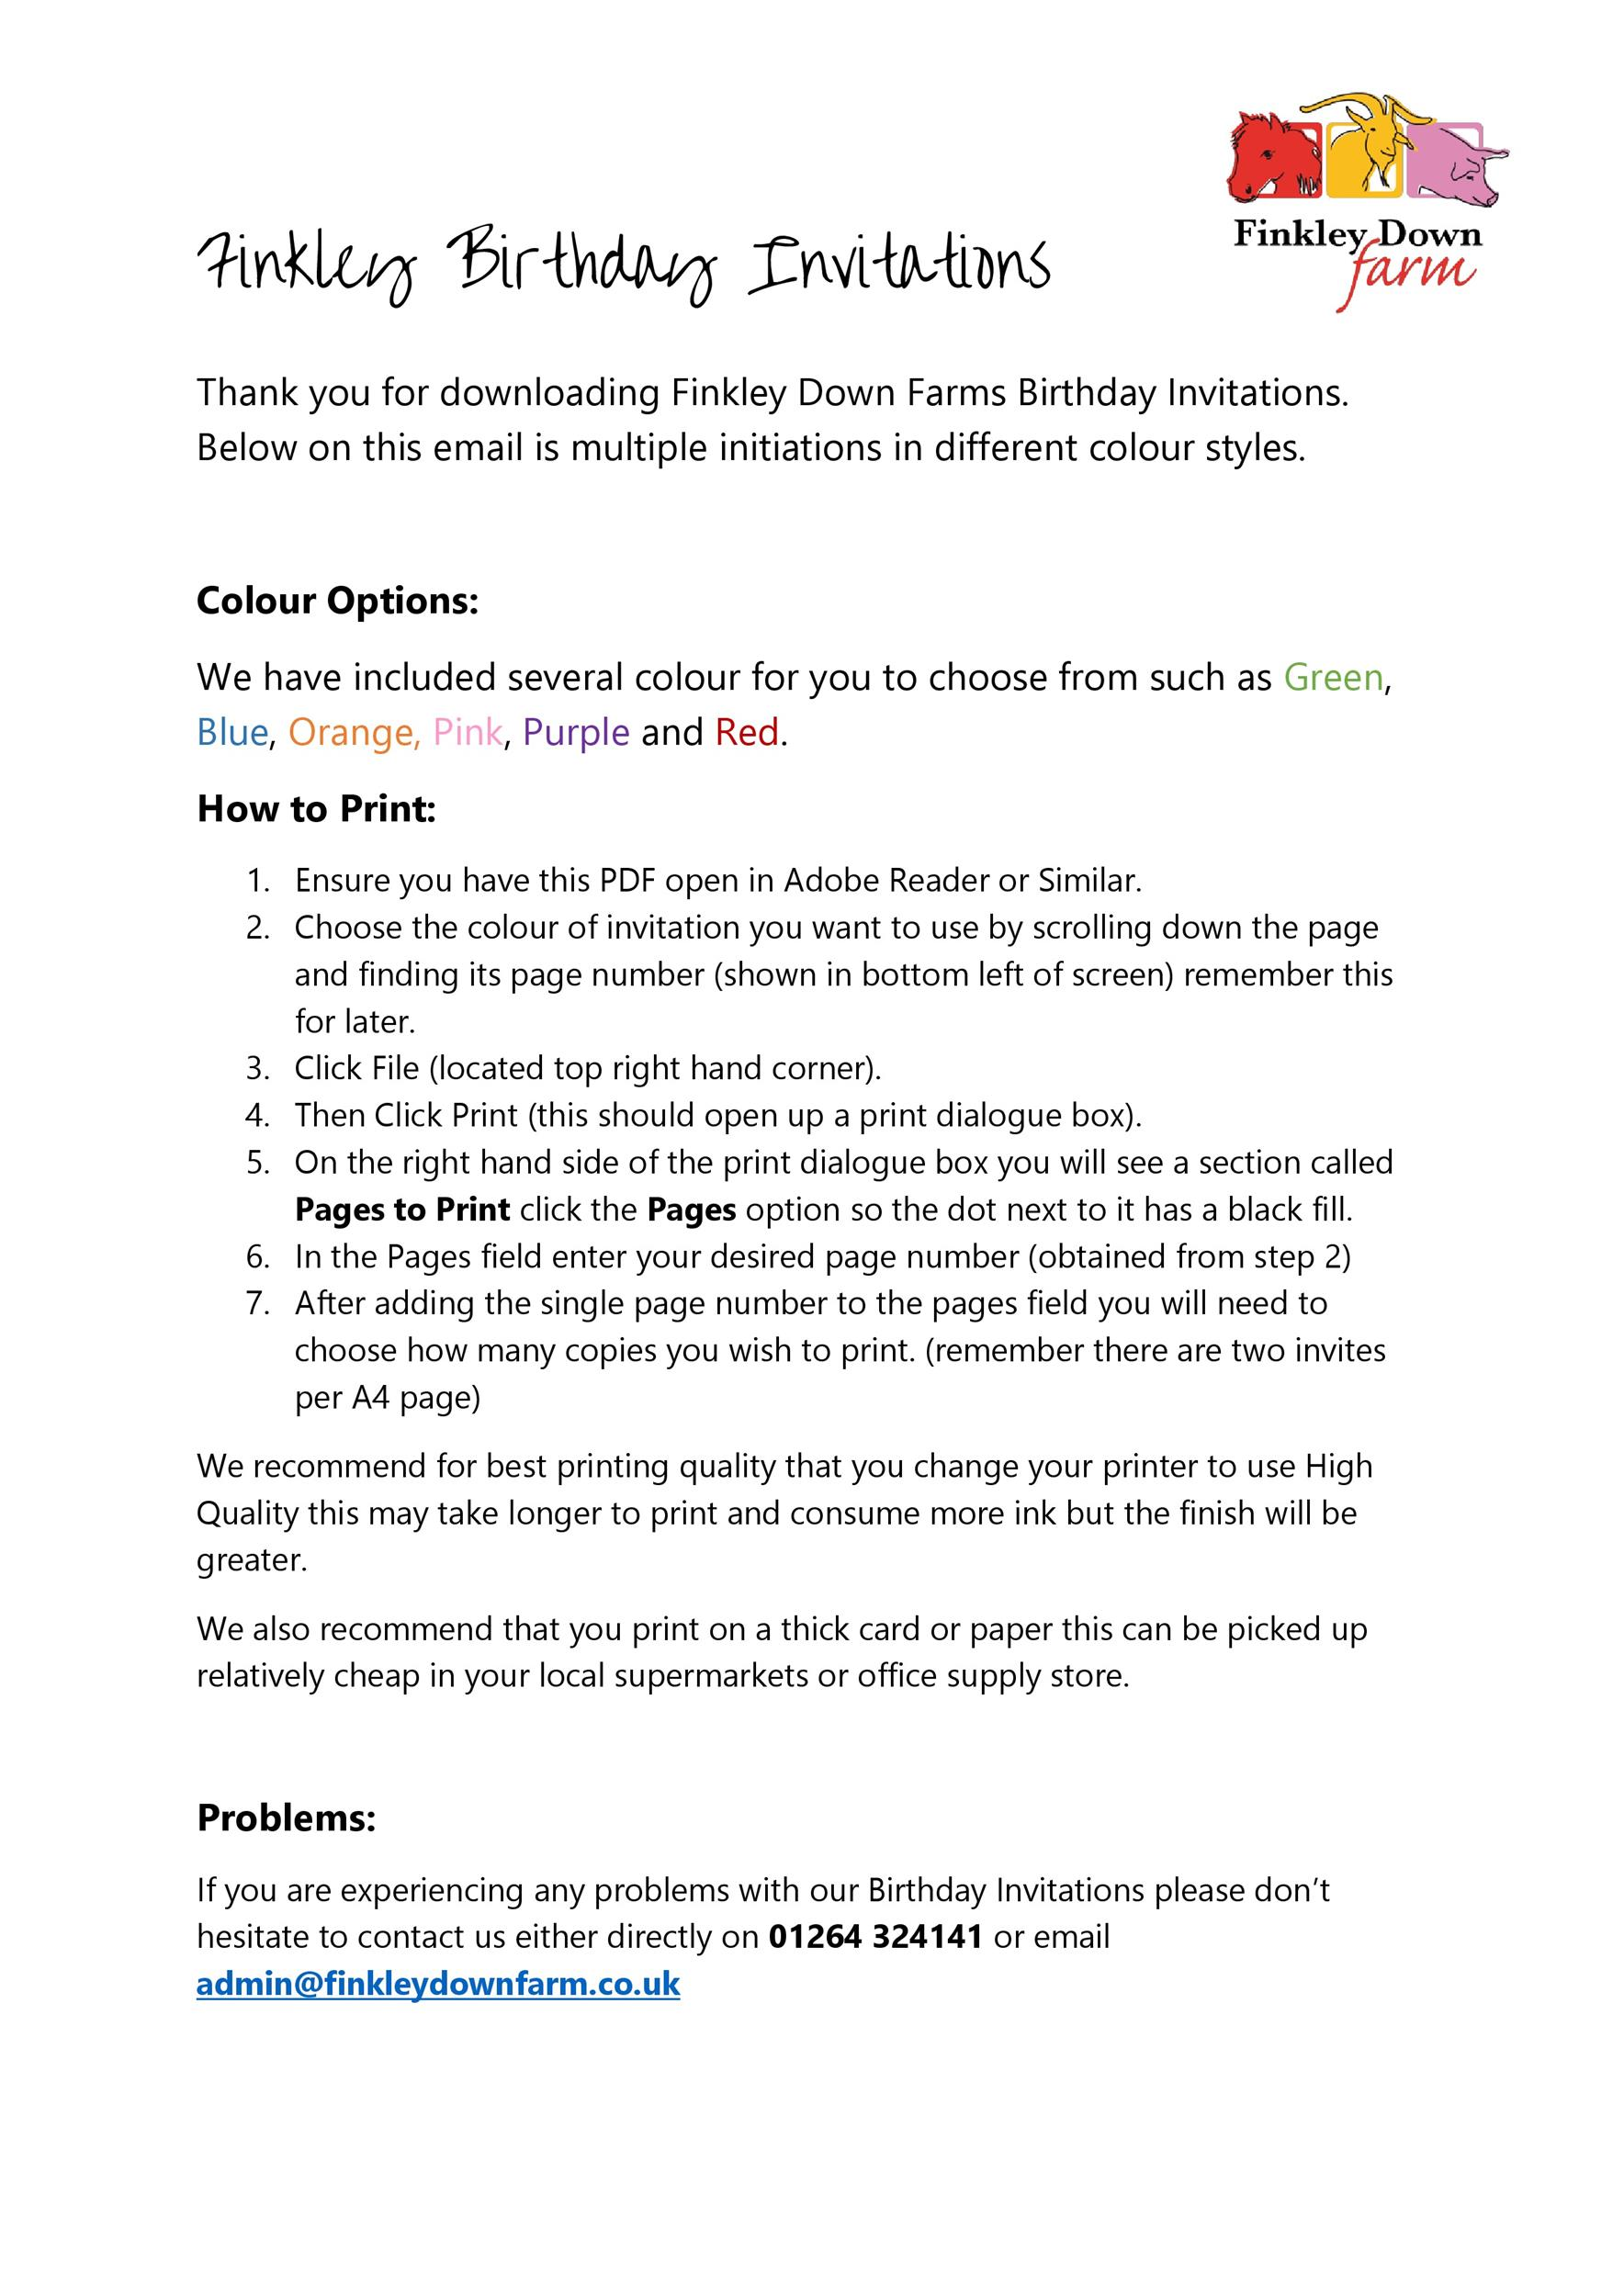 40+ Free Birthday Party Invitation Templates ᐅ Template Lab